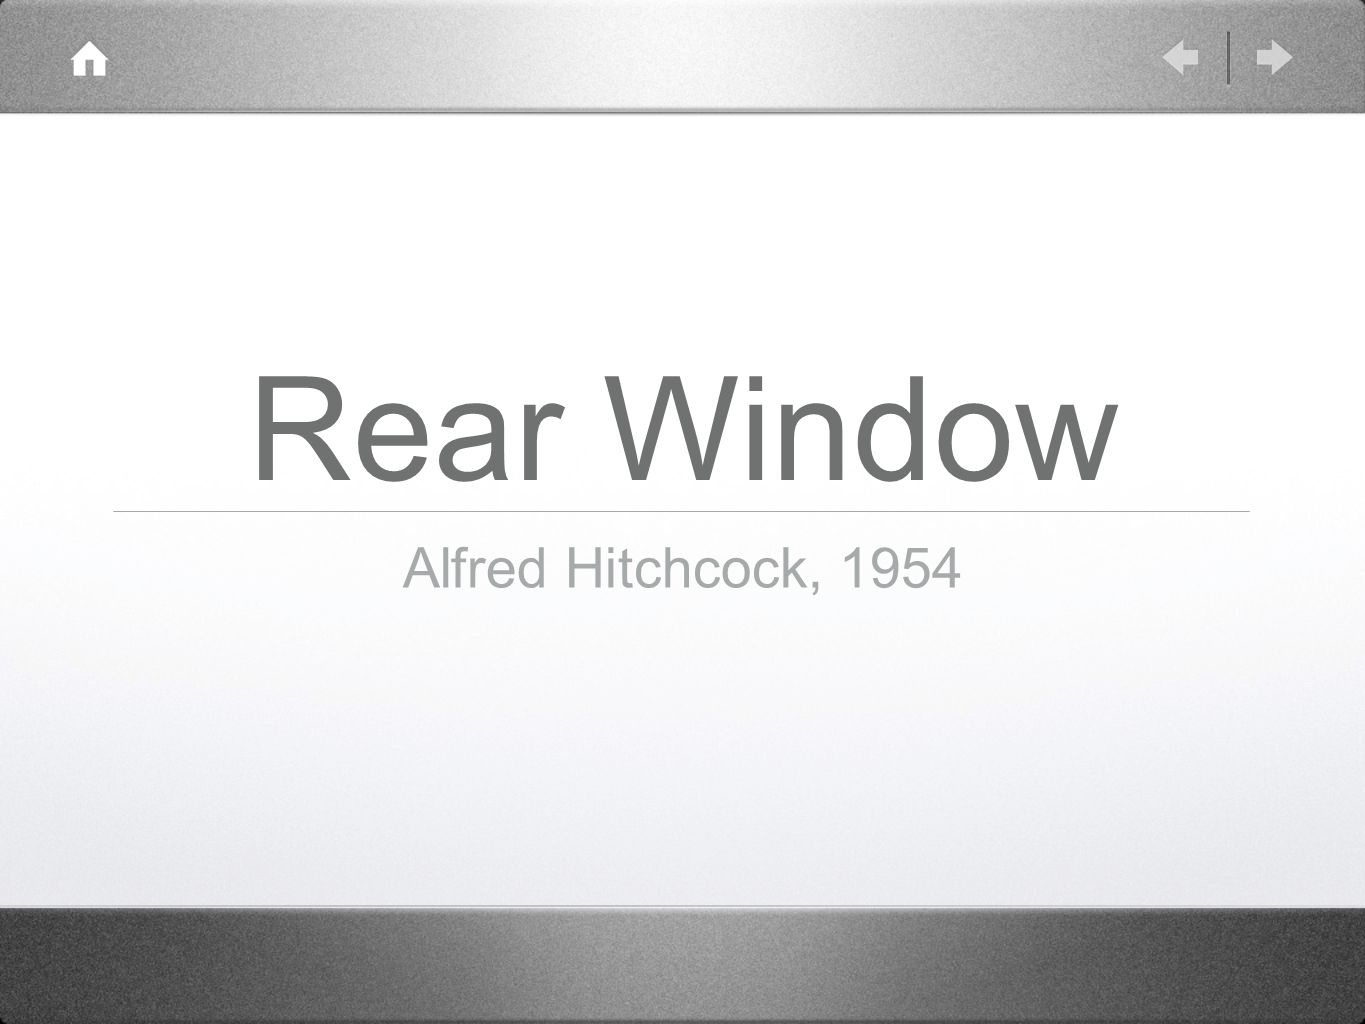 Rear Window Alfred Hitchcock, 1954